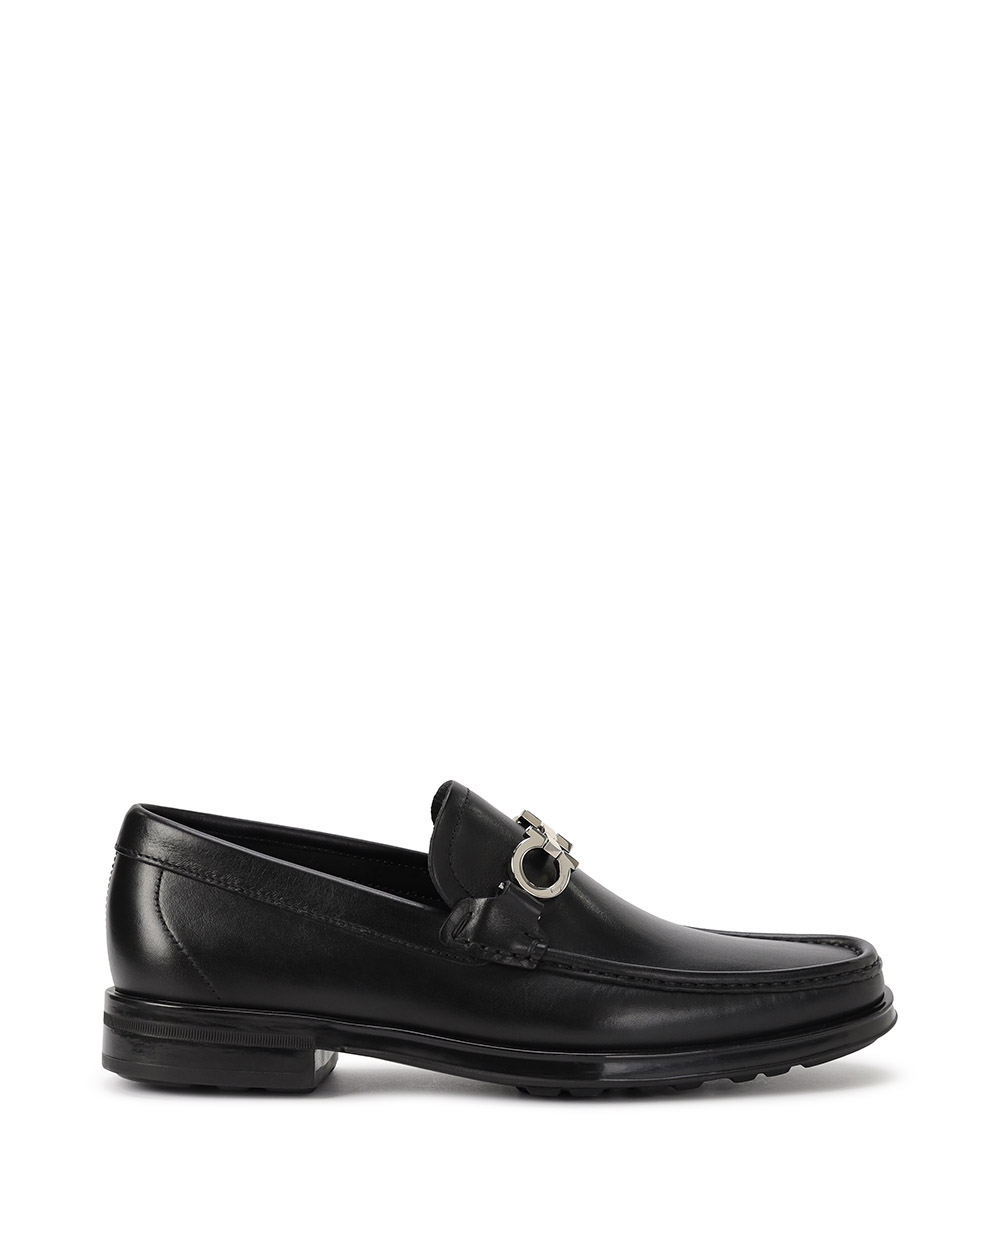 Metal Buckle Leather Shoes